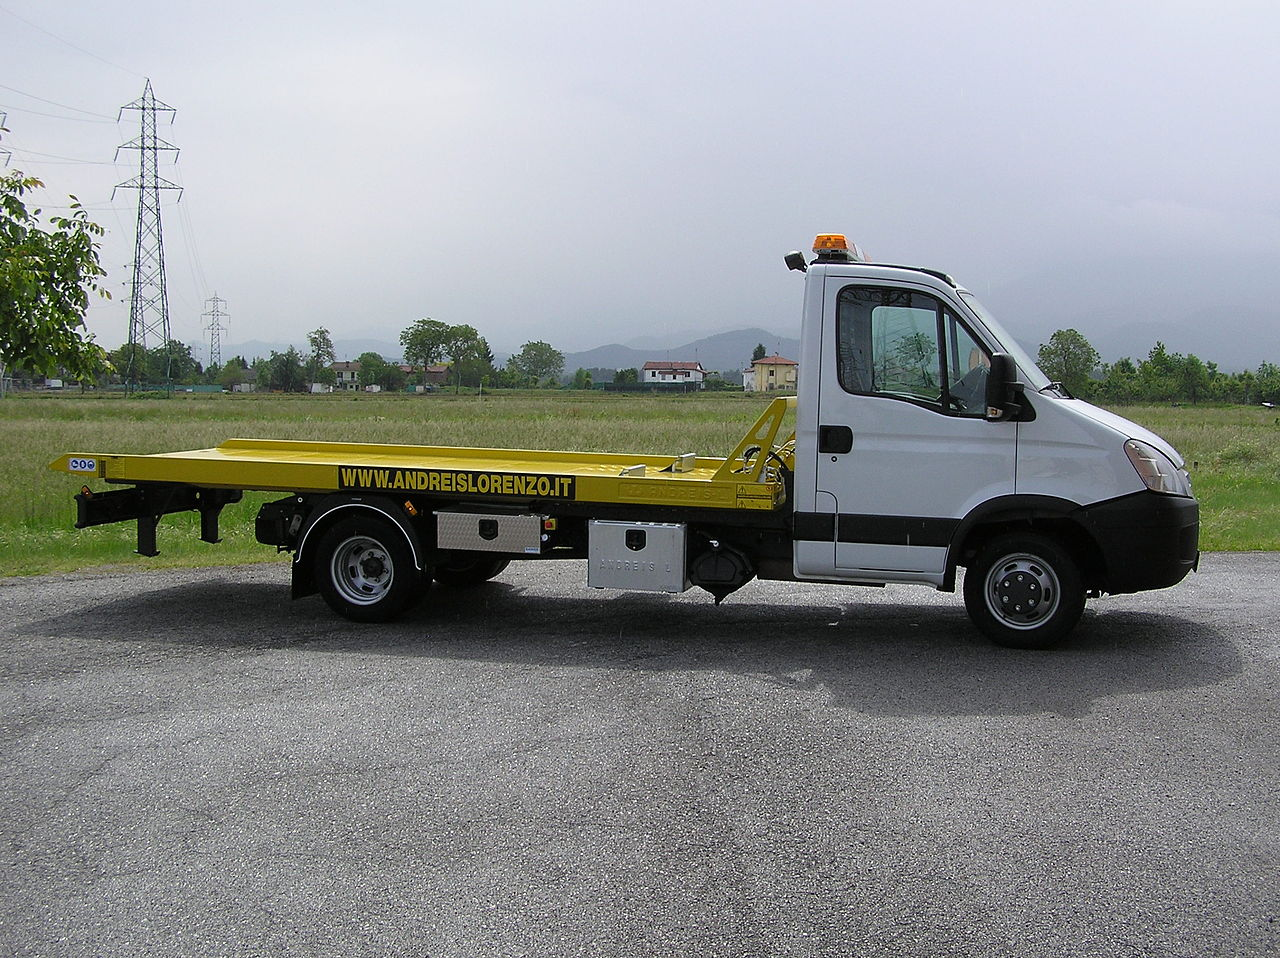 File D Panneuse Carro Attrezzi Towing Truck Abschleppwagen